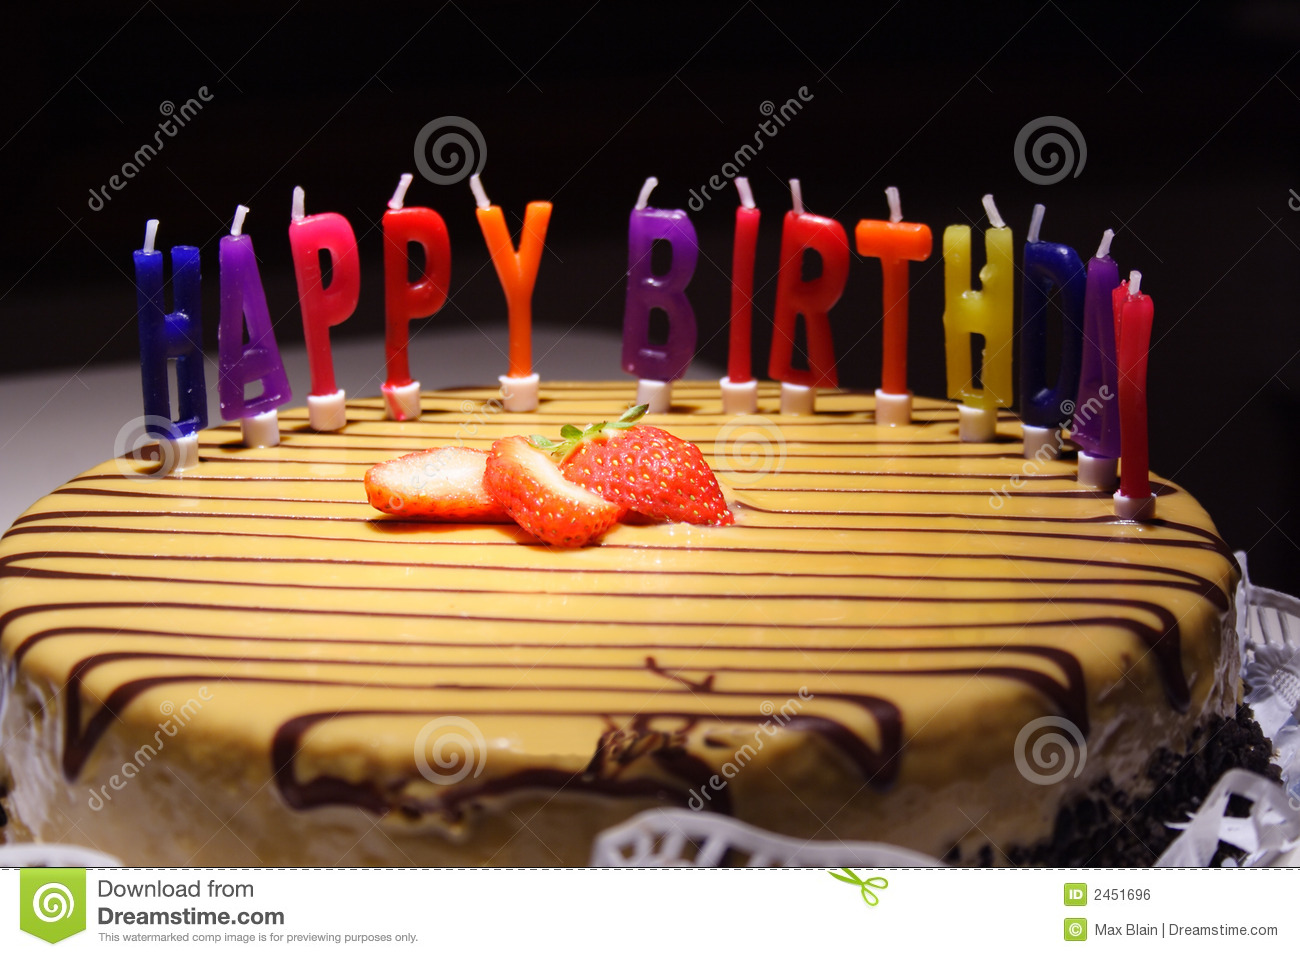 Happy Birthday Cake Stock Photos Download 33539 Images